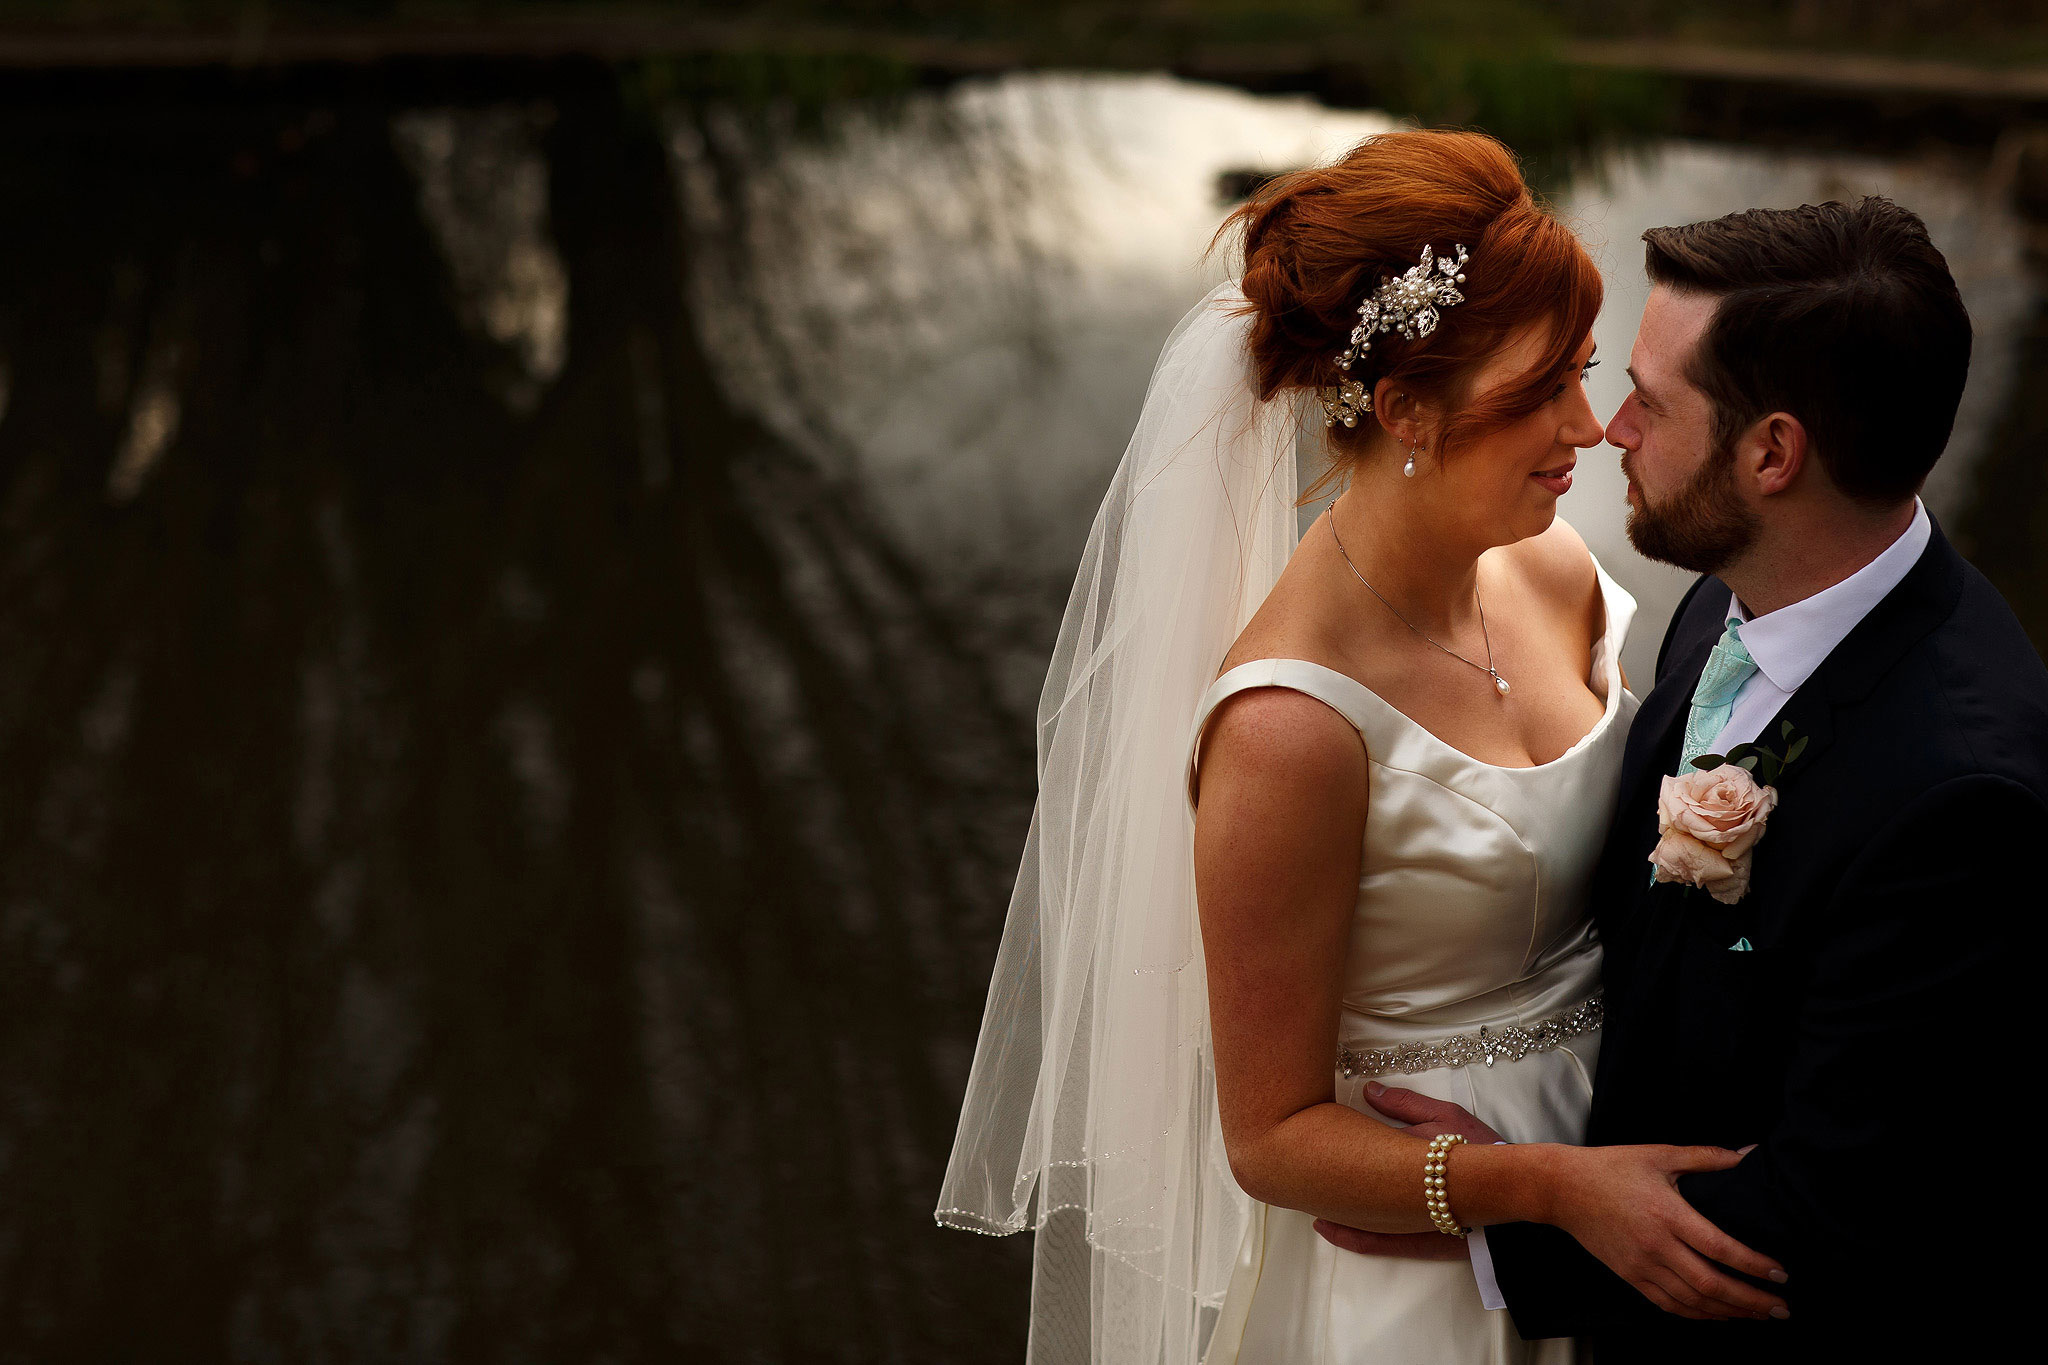 Bride with red hair and crystal headpiece and long veil facing the groom during wedding portraits at Oakwell Hall